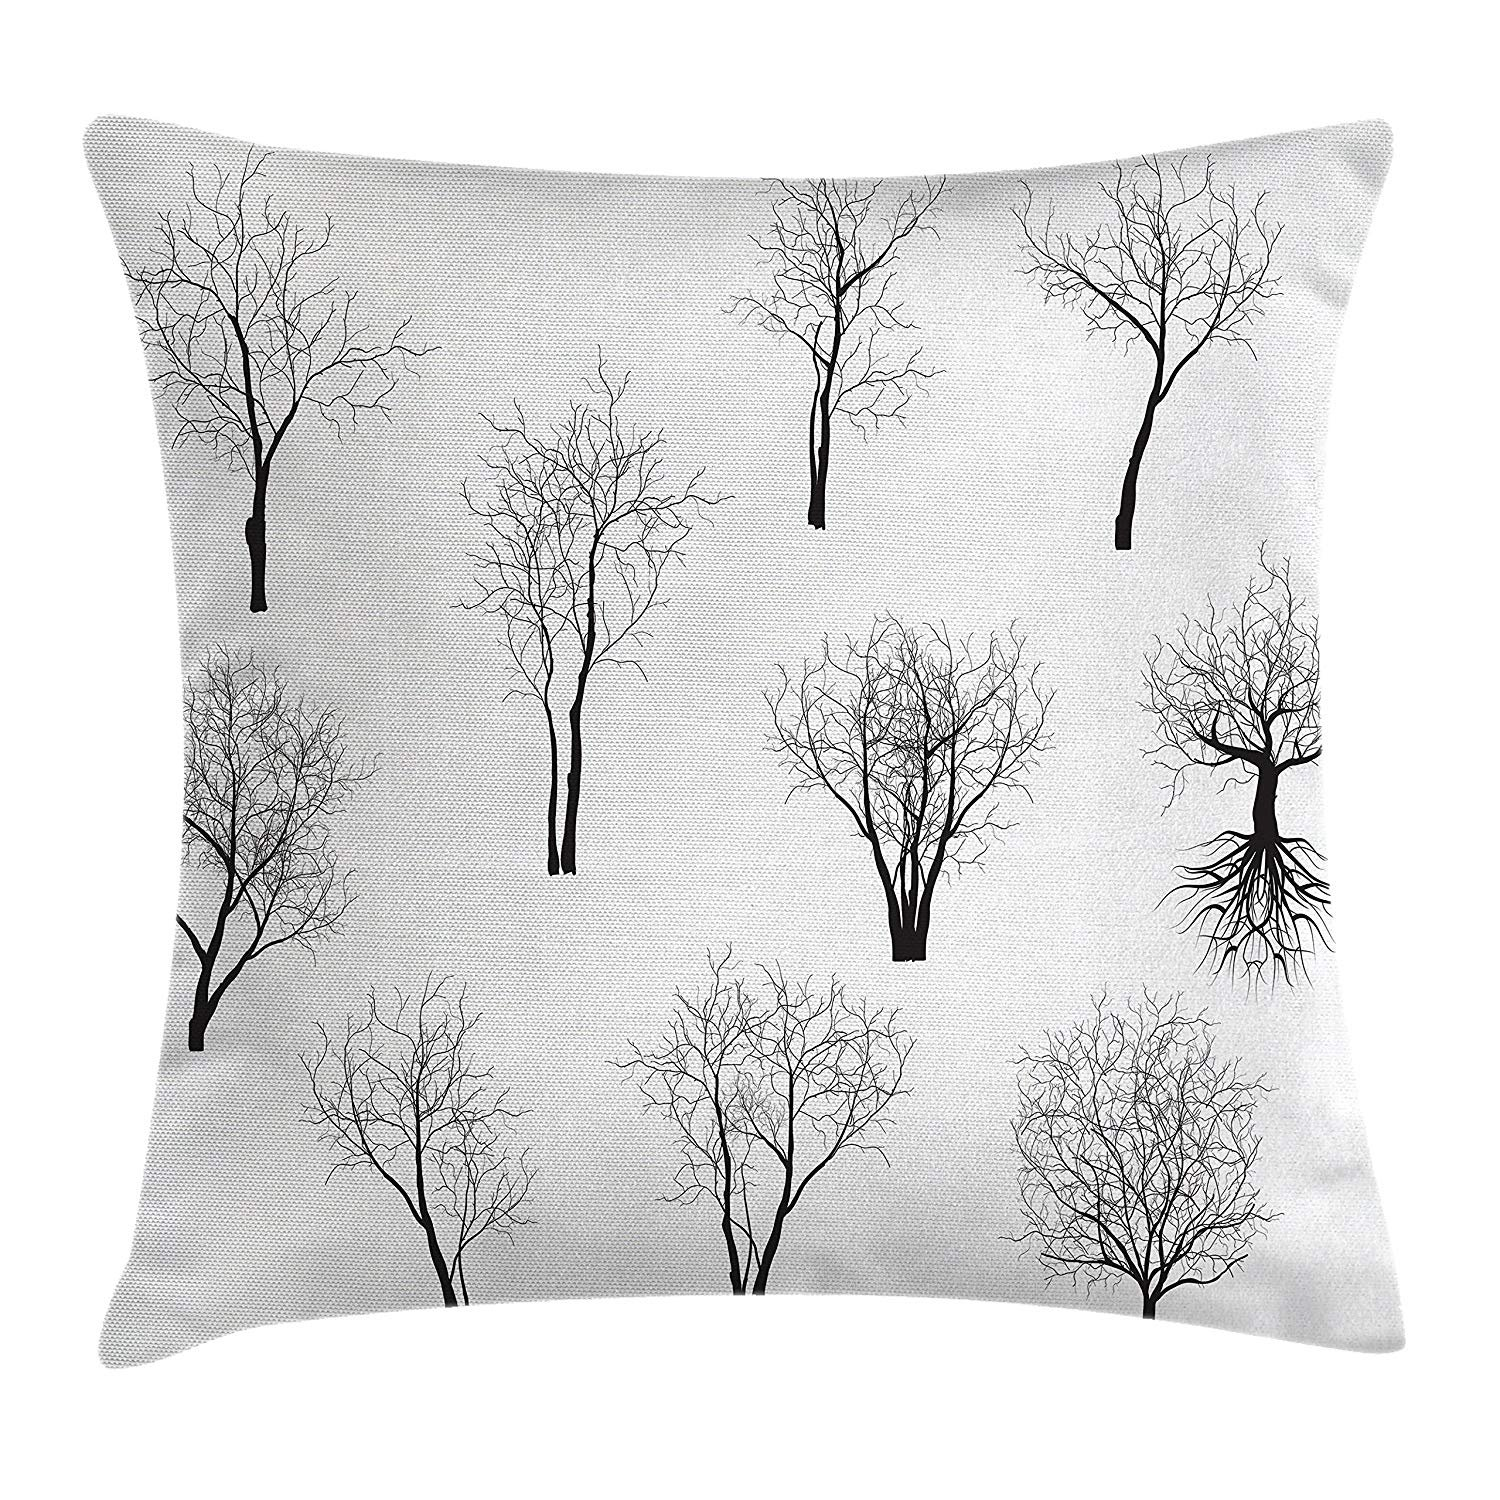 Queen Area Apartment Decor Spooky Horror Movie Themed Branches Forest Trees Nature Square Throw Pillow Covers Cushion Case Sofa Bedroom Car 18x18 inch, Black White